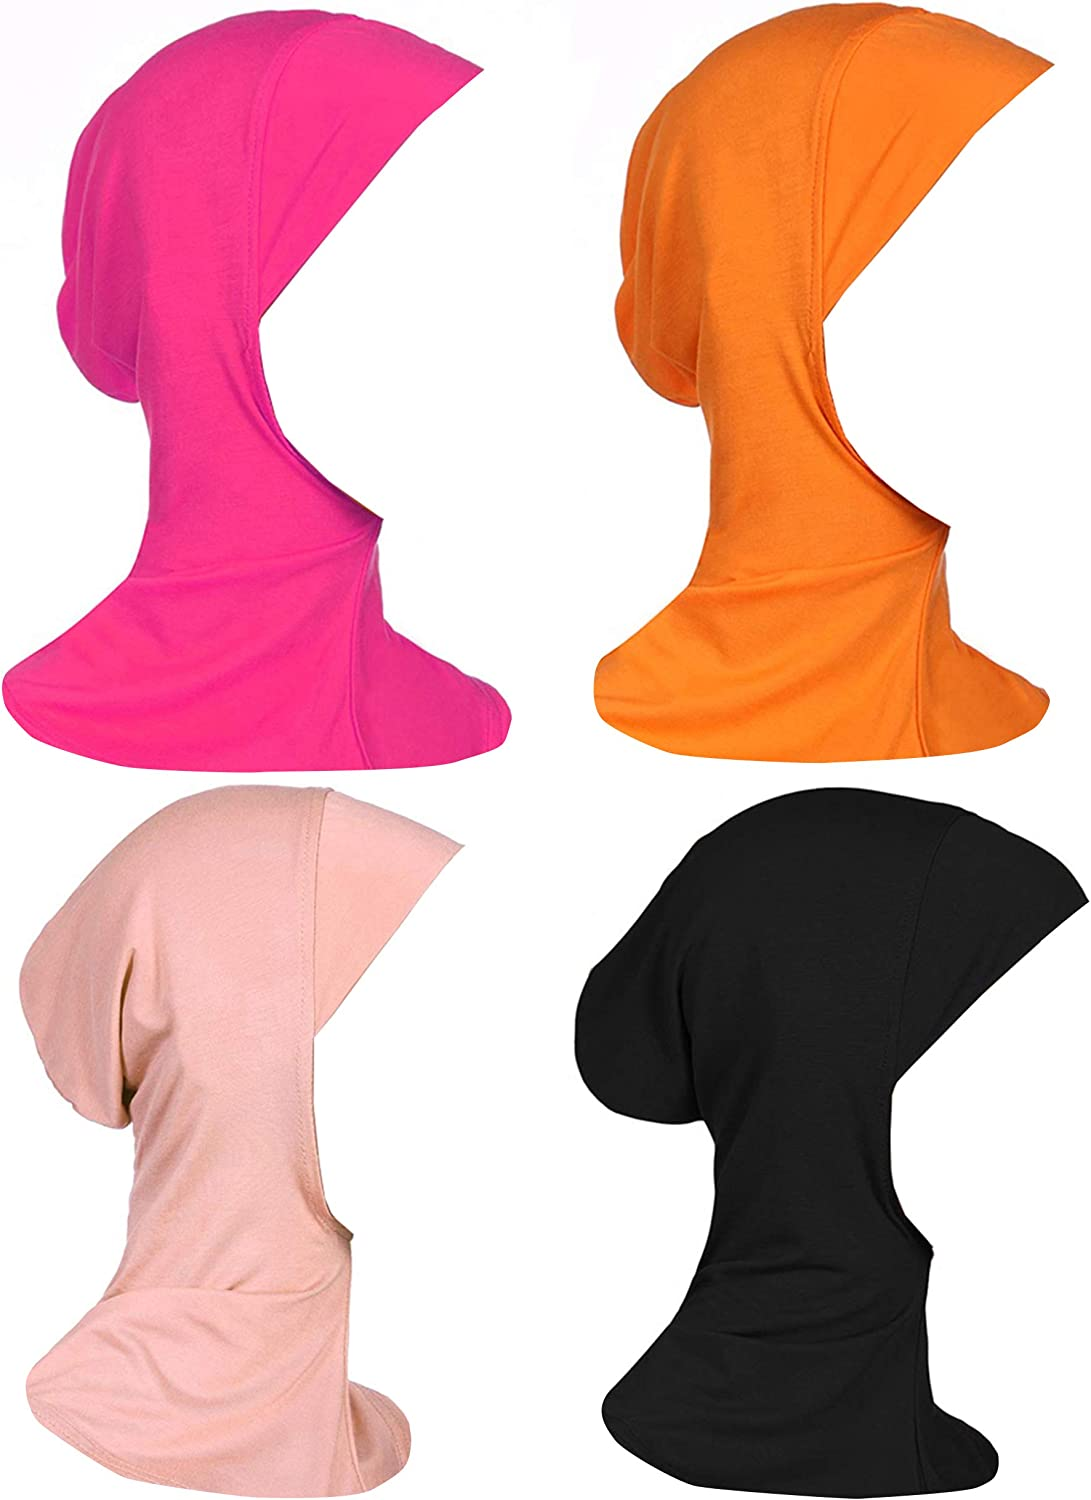 GladThink Womens Muslim Mini Hijab Caps Islamic Scarf 4 Pieces